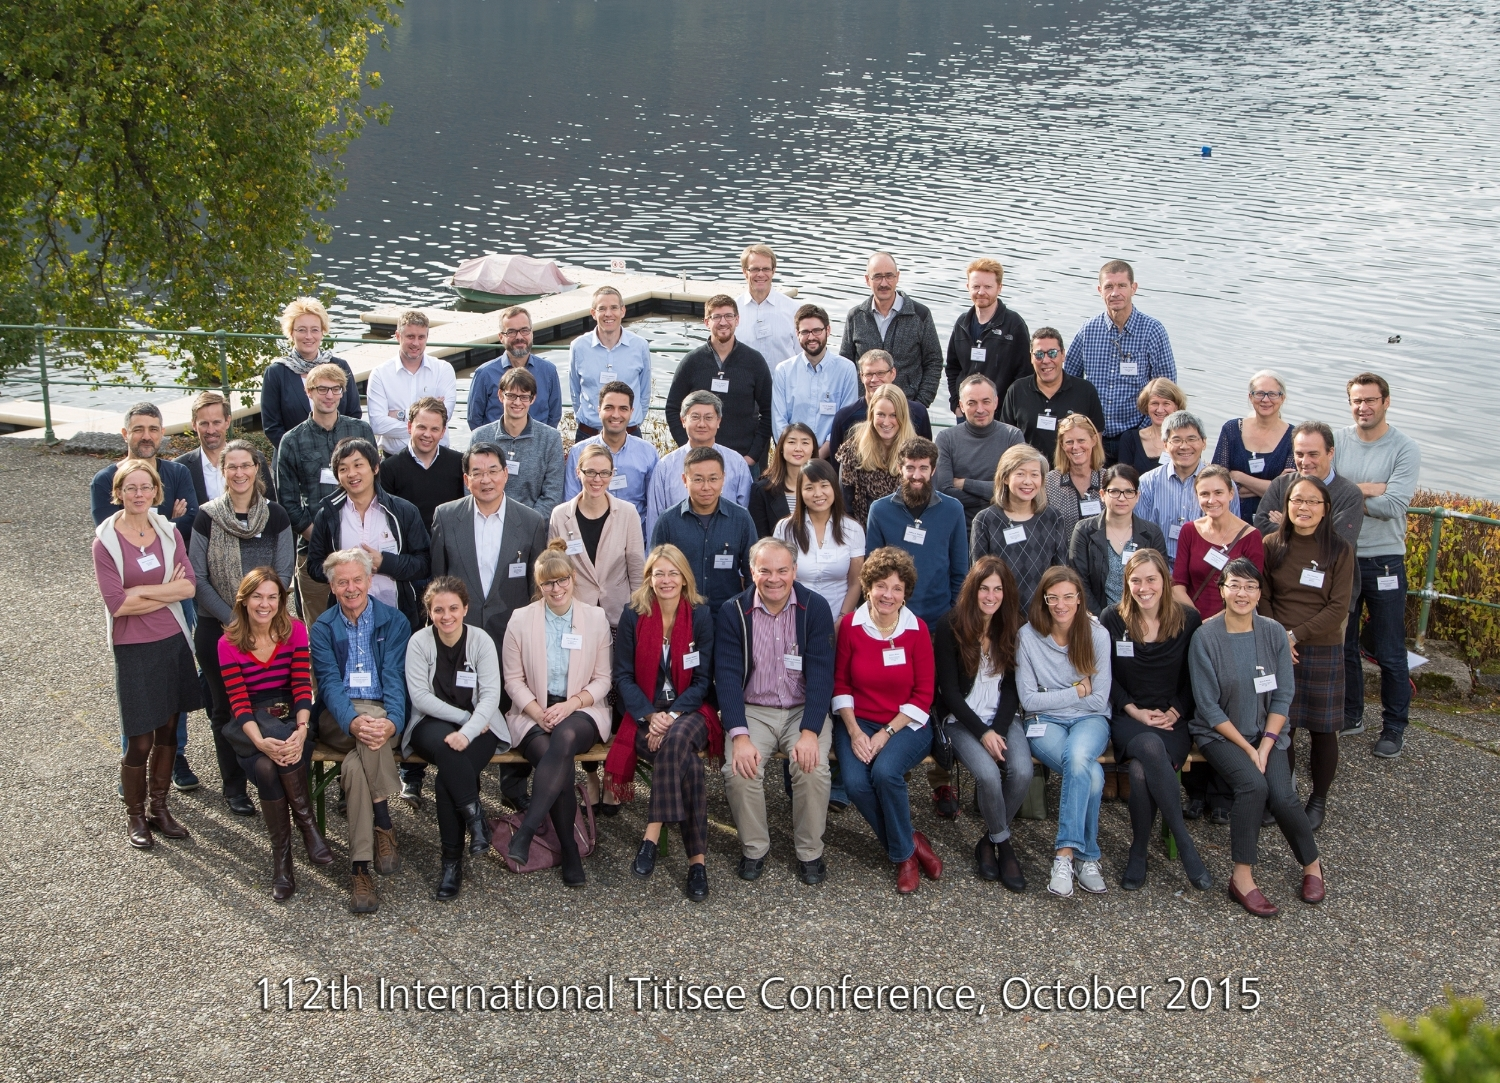 October, 2015: 112th International Titisee Conference, Titisee Germany - Organoids: modelling development and disease in 3D culture